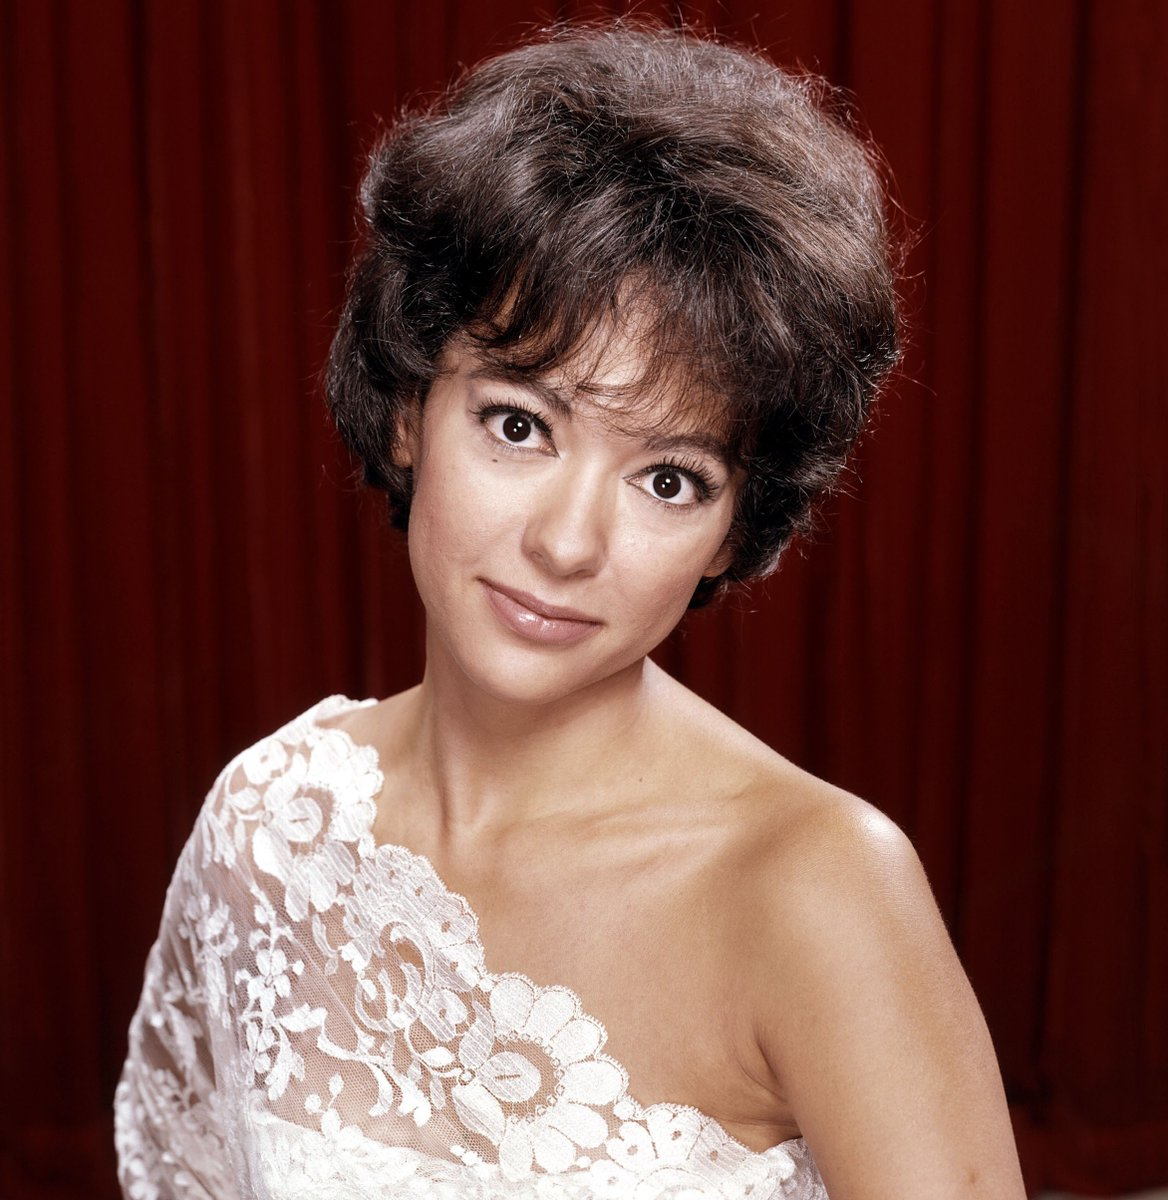 Rita Moreno was born in Puerto Rico and came to New York City when she was five years old. She is the only Hispanic American to have won a Grammy, an Oscar, a Tony, and an Emmy. In 2004,Rita was awarded the Presidential Medal of Freedom. #HispanicHeritageMonth2020